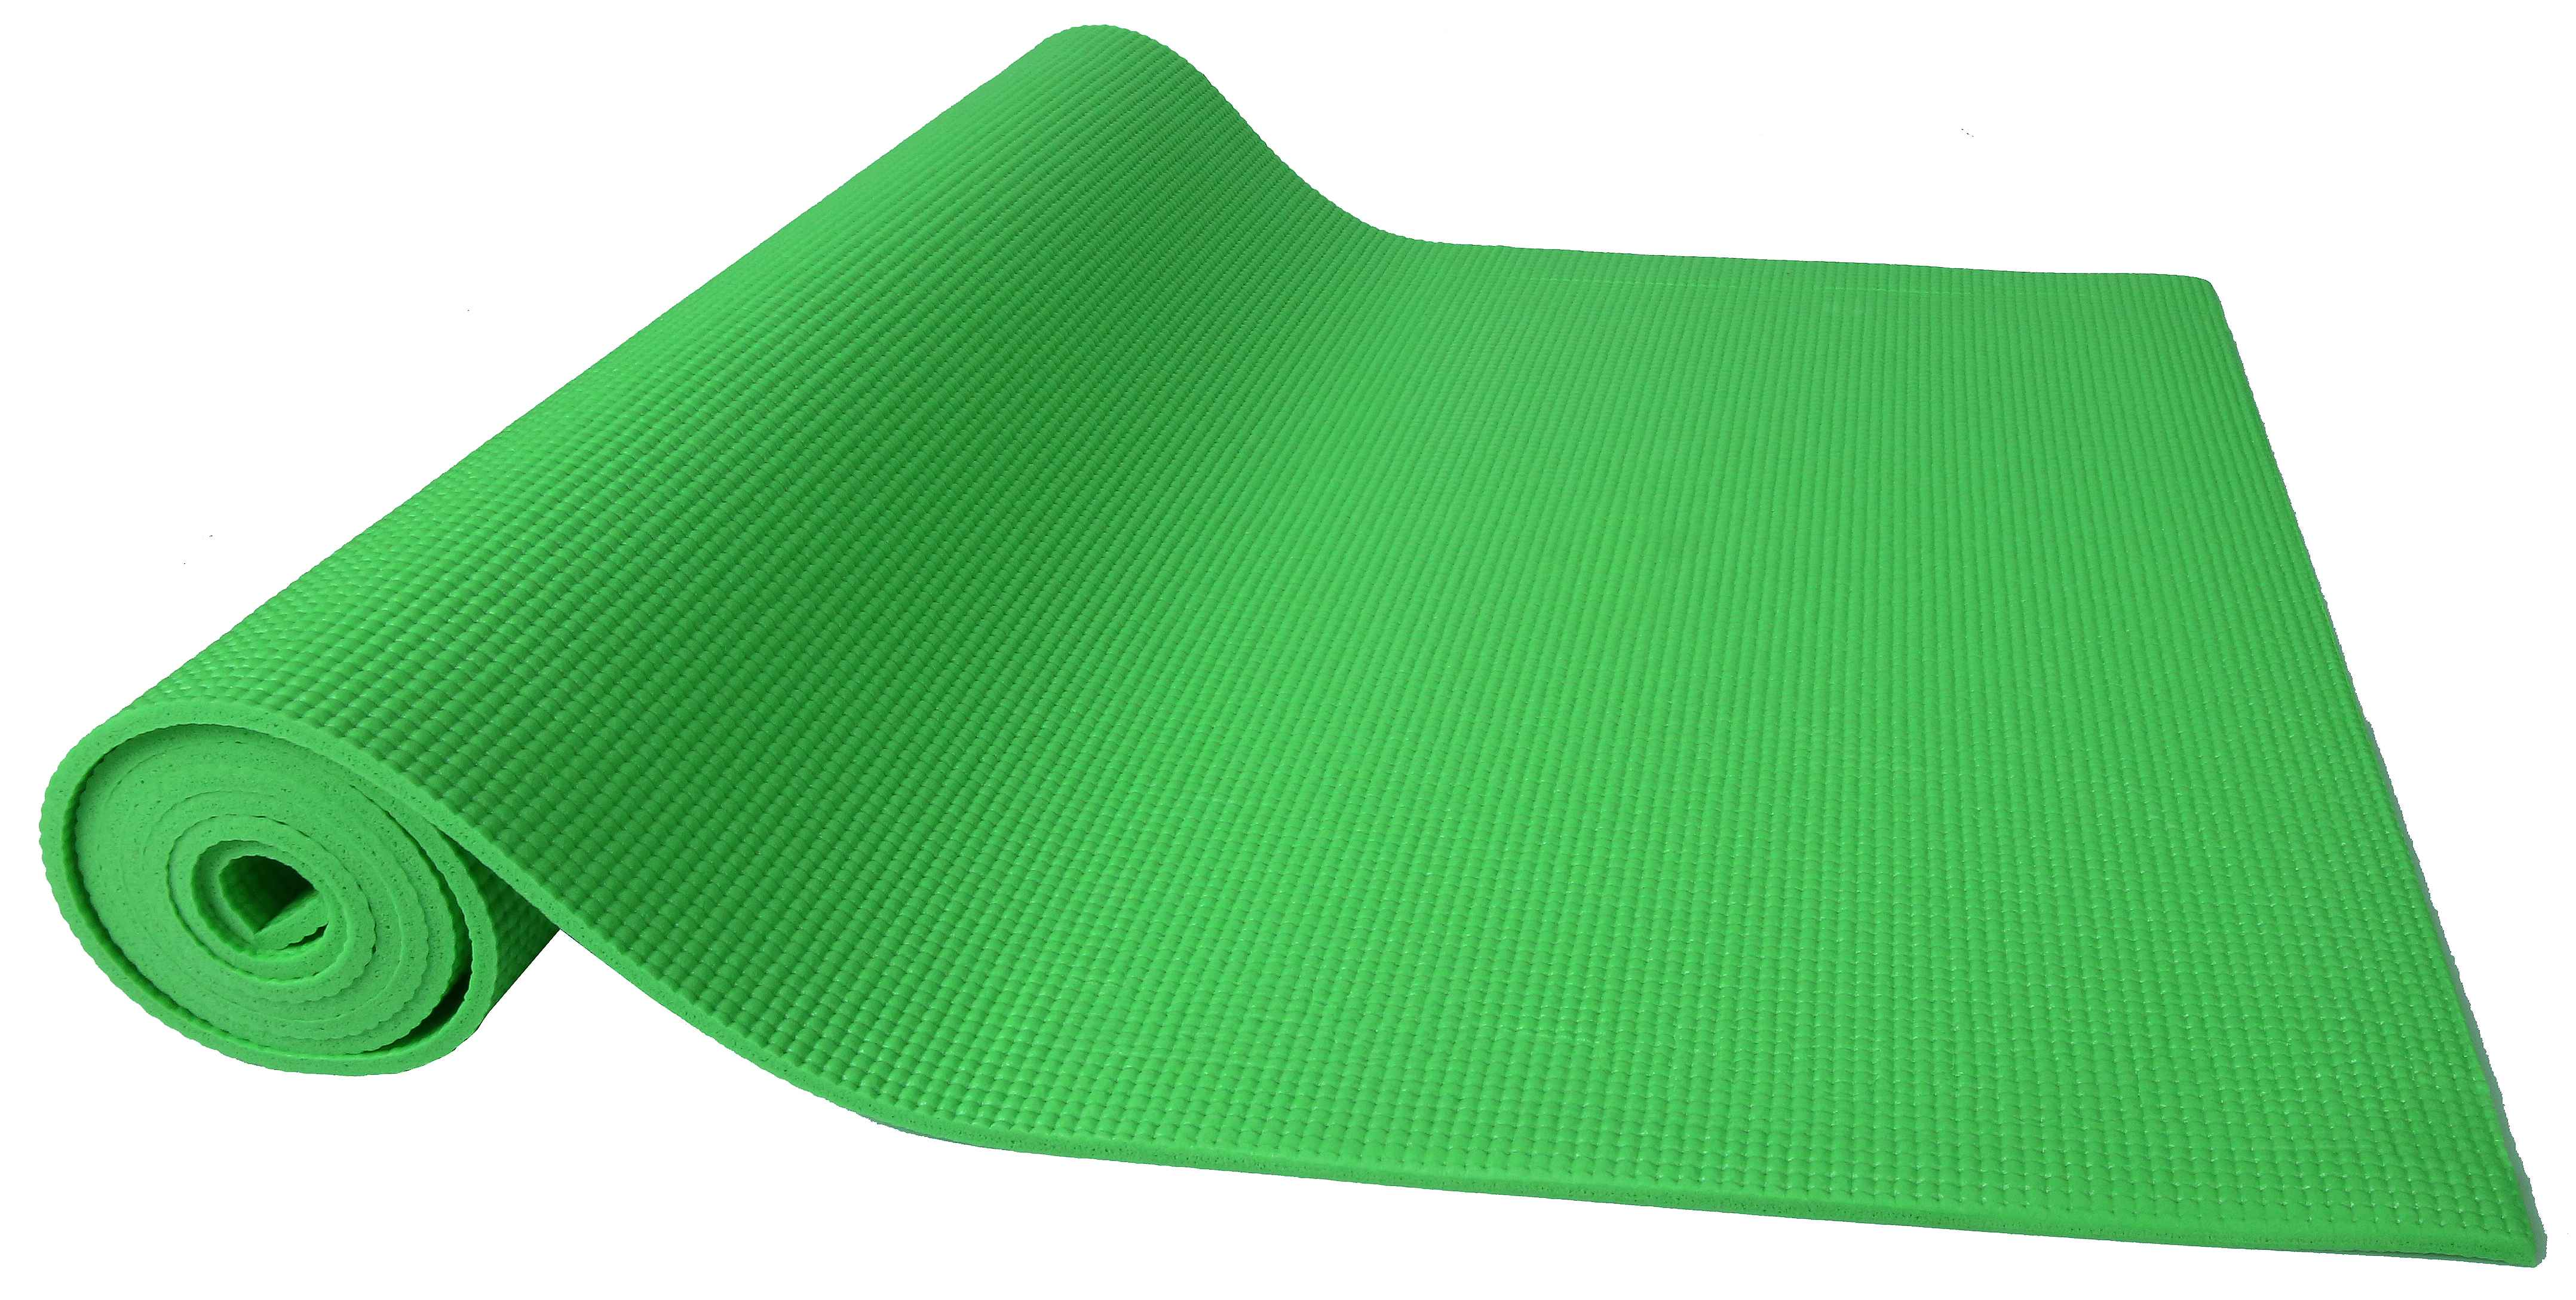 [US Direct] Original BalanceFrom GoYoga All Purpose High Density Non-Slip Exercise Yoga Mat with Carrying Strap, Blue Green